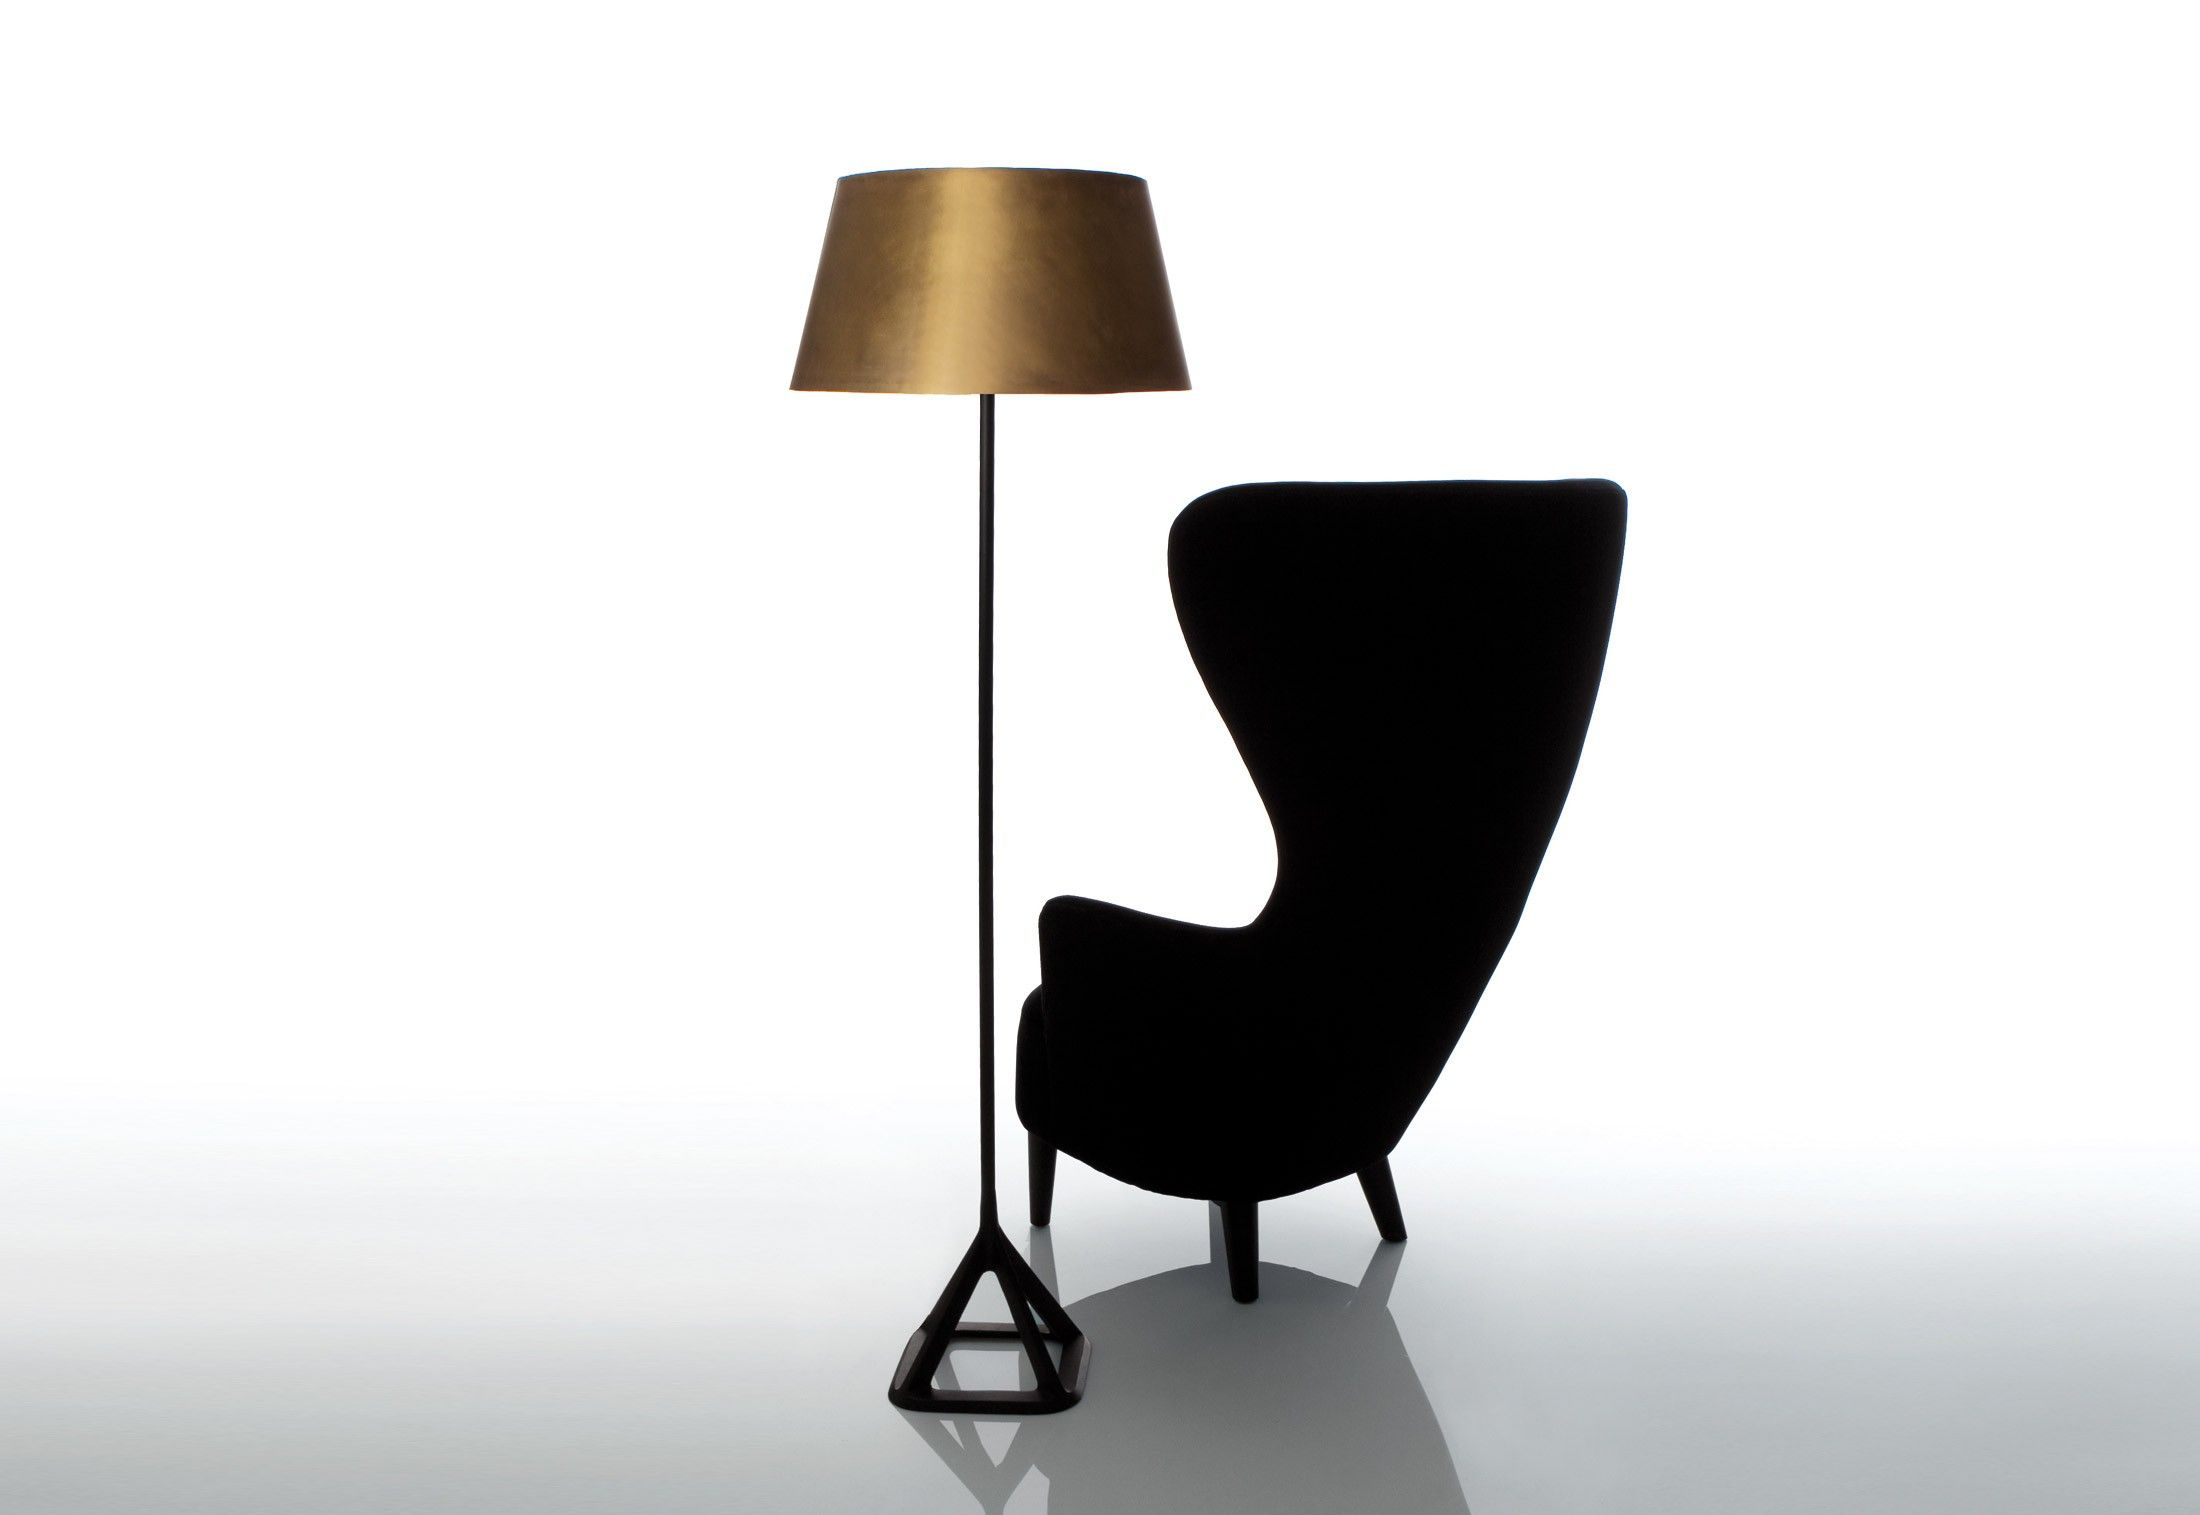 Wingback Chair 2008 By Tom Dixon 1959 Tunisia If You Re Going To Make A Wi With Images Metal Living Room Brass Floor Lamp Contemporary Modern Furniture